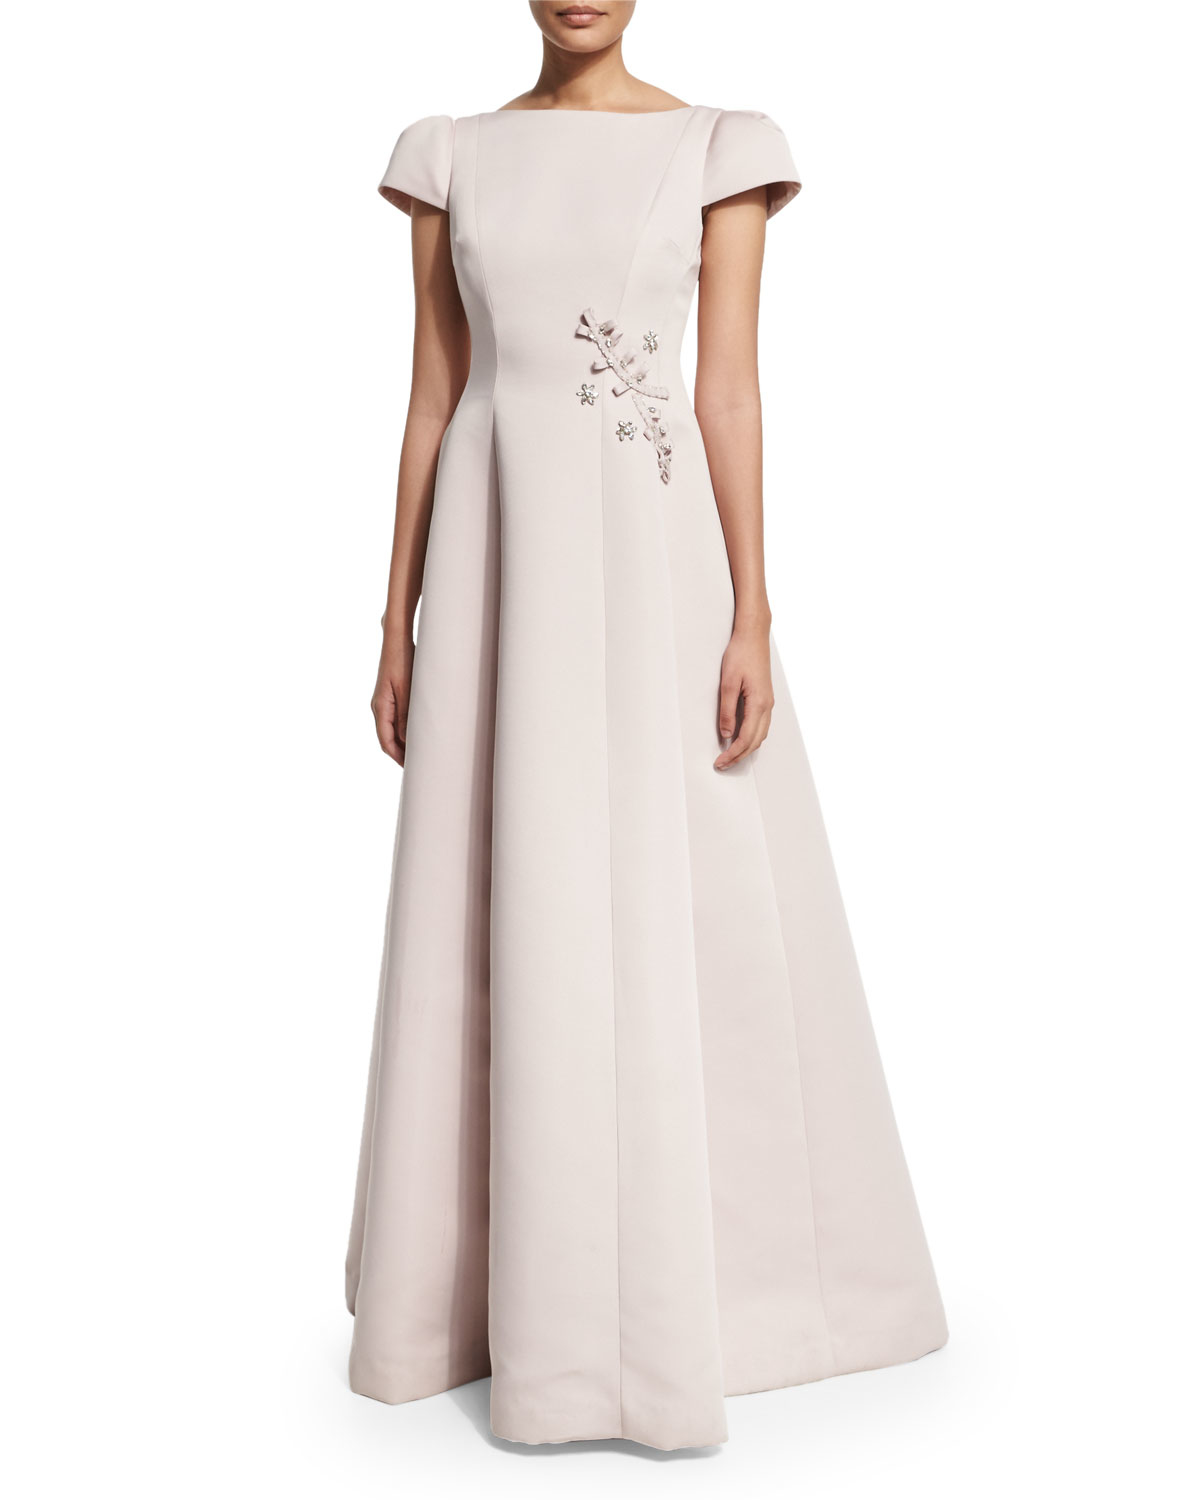 Lyst - Teri Jon Short-sleeve Embroidered Ball Gown in Pink